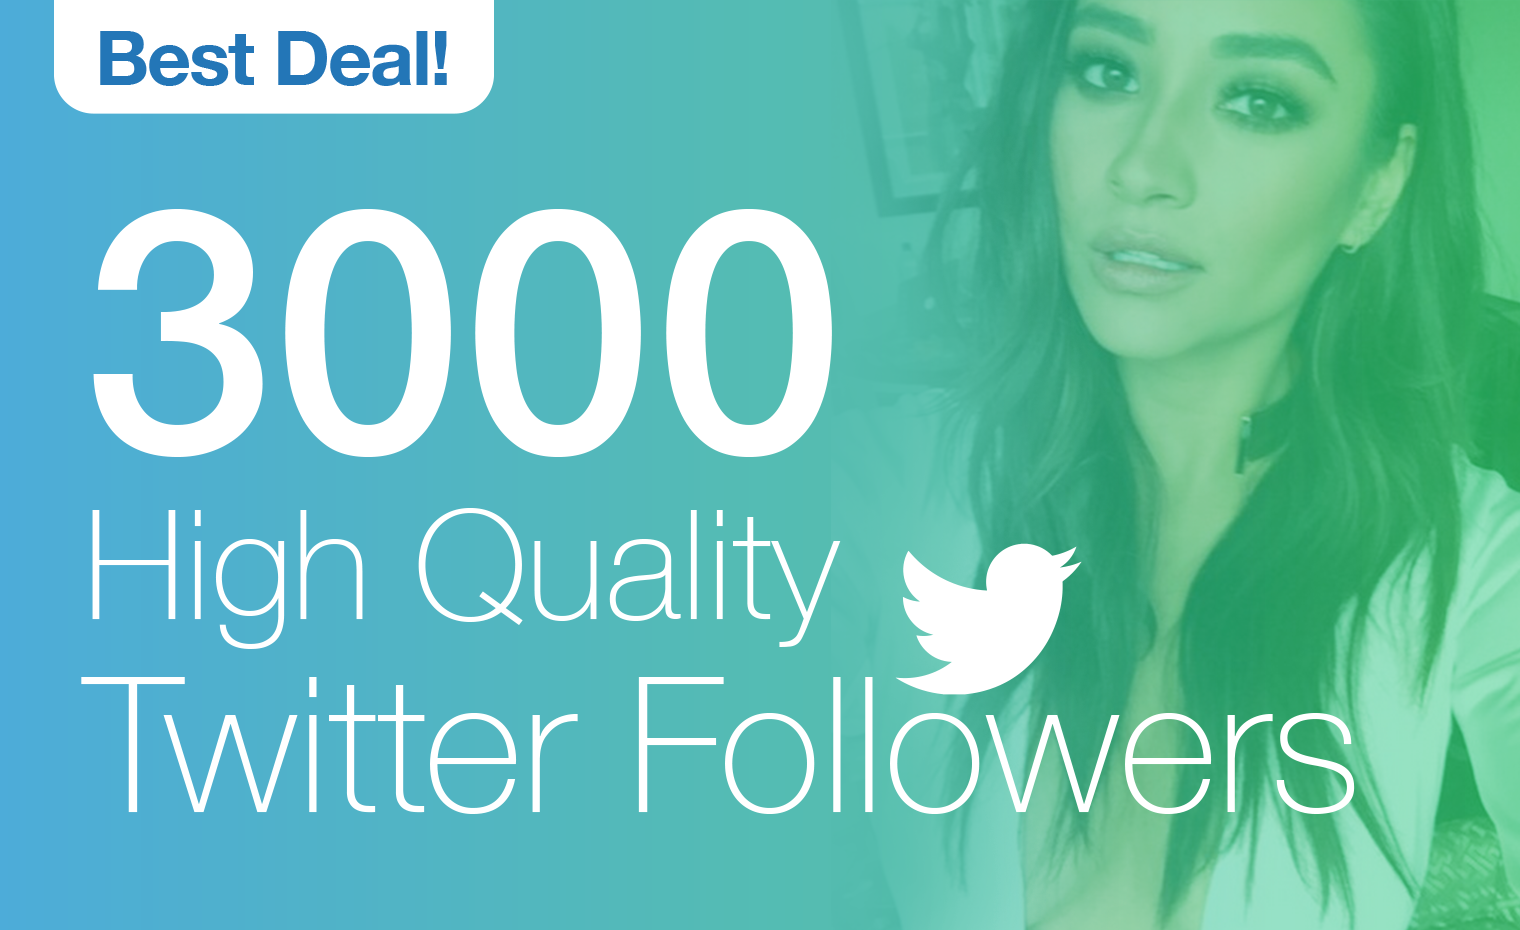 give you High Quality 3000 Twitter followers